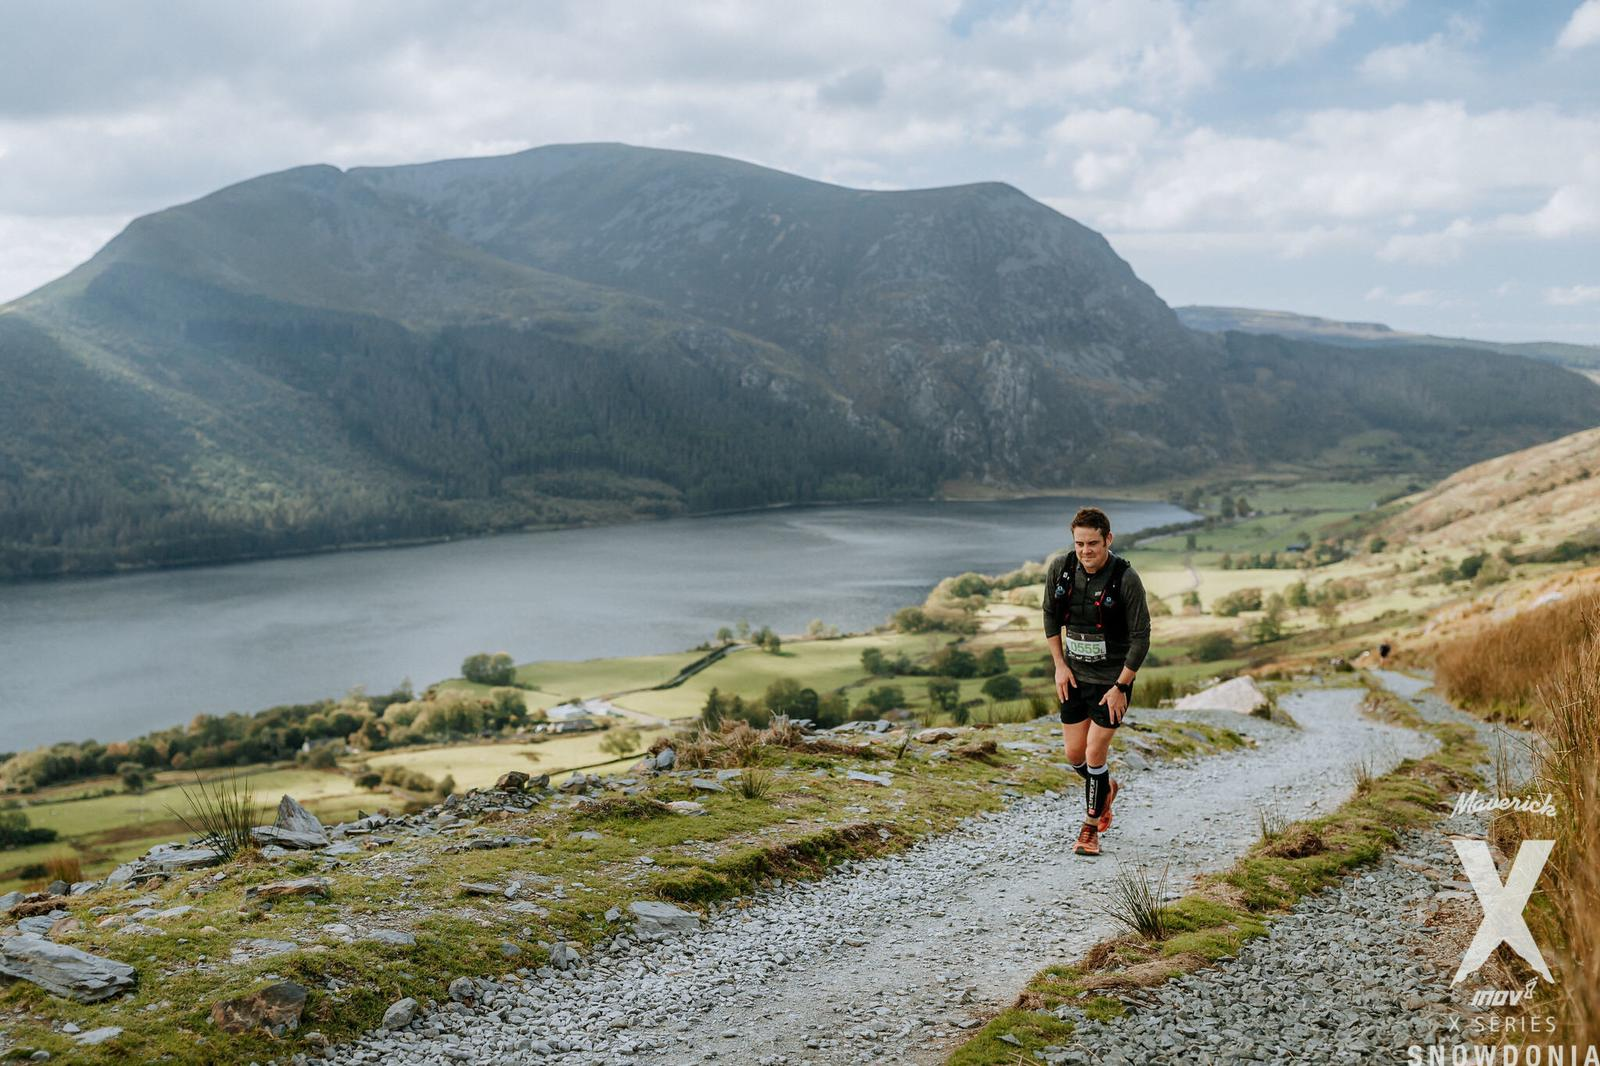 PC In Snowdon - PC ran the Maverick X-Series Snowdonia Marathon with us last year. Luckily this photo isn't of him going through the bog where many tears were shed.